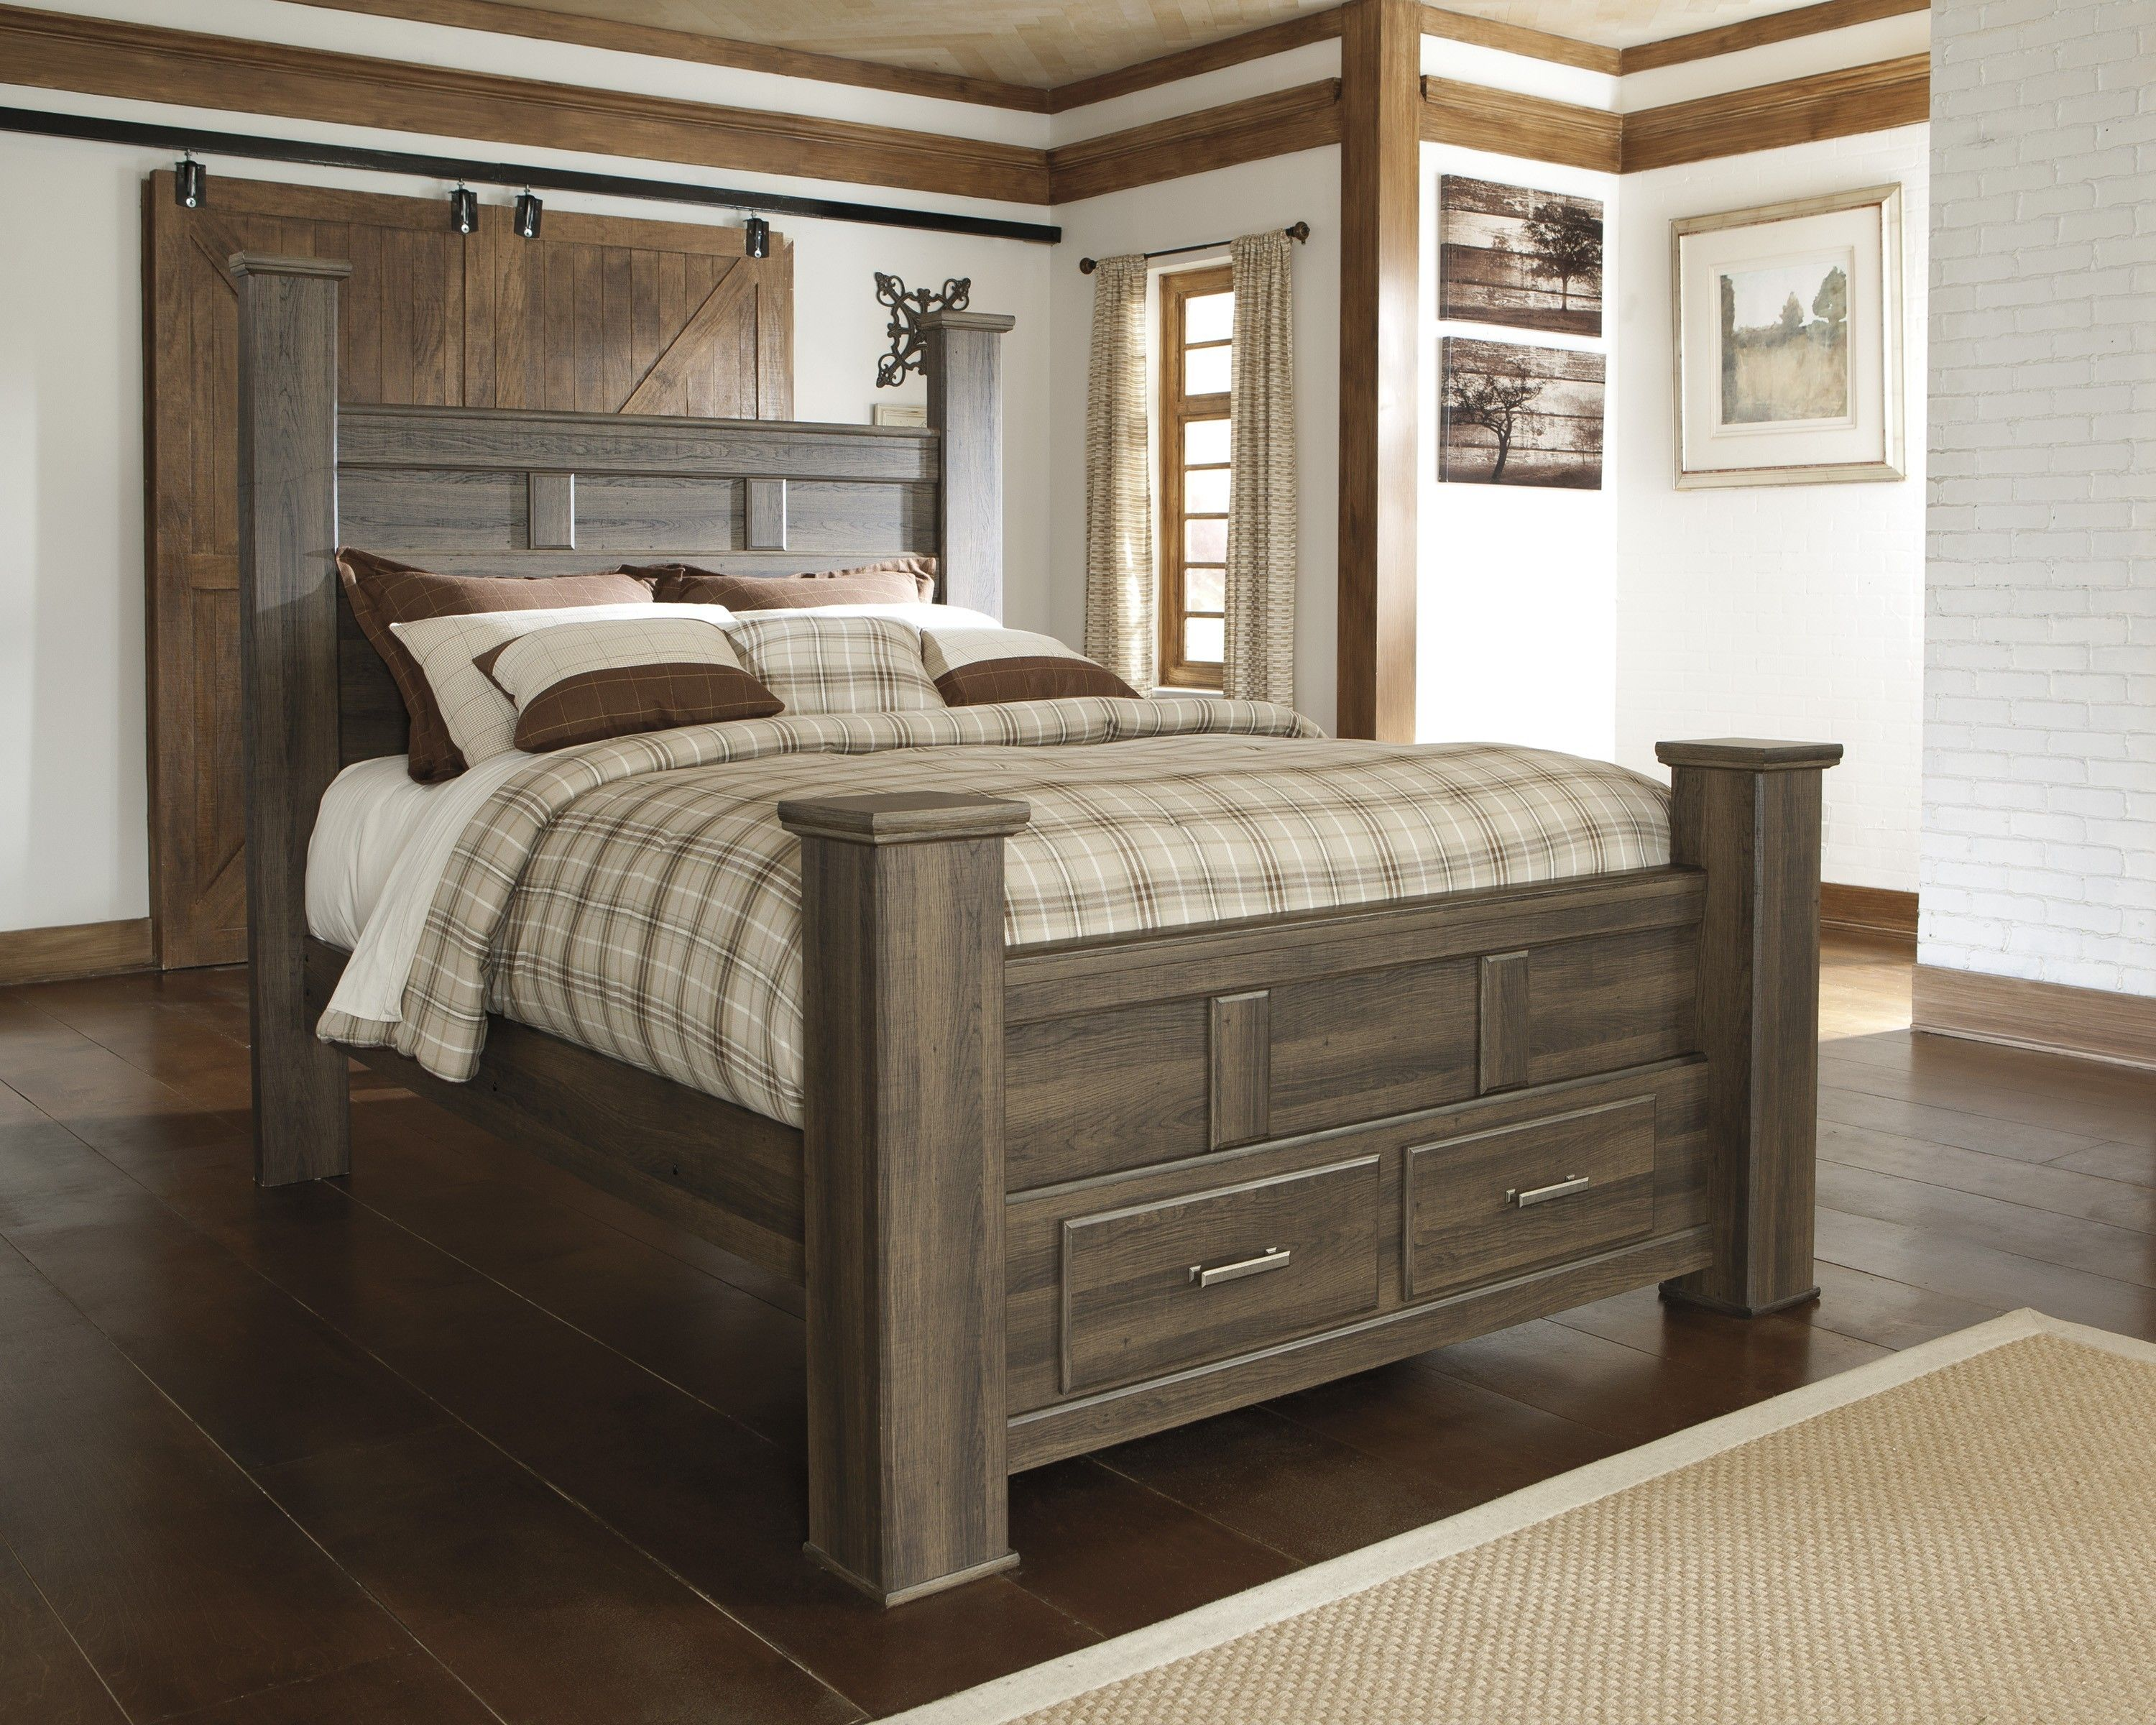 masculine dark smooth finished oak wood full size bed frame be equipped four square post and two end drawers also striped grey bedding sheet comforter and